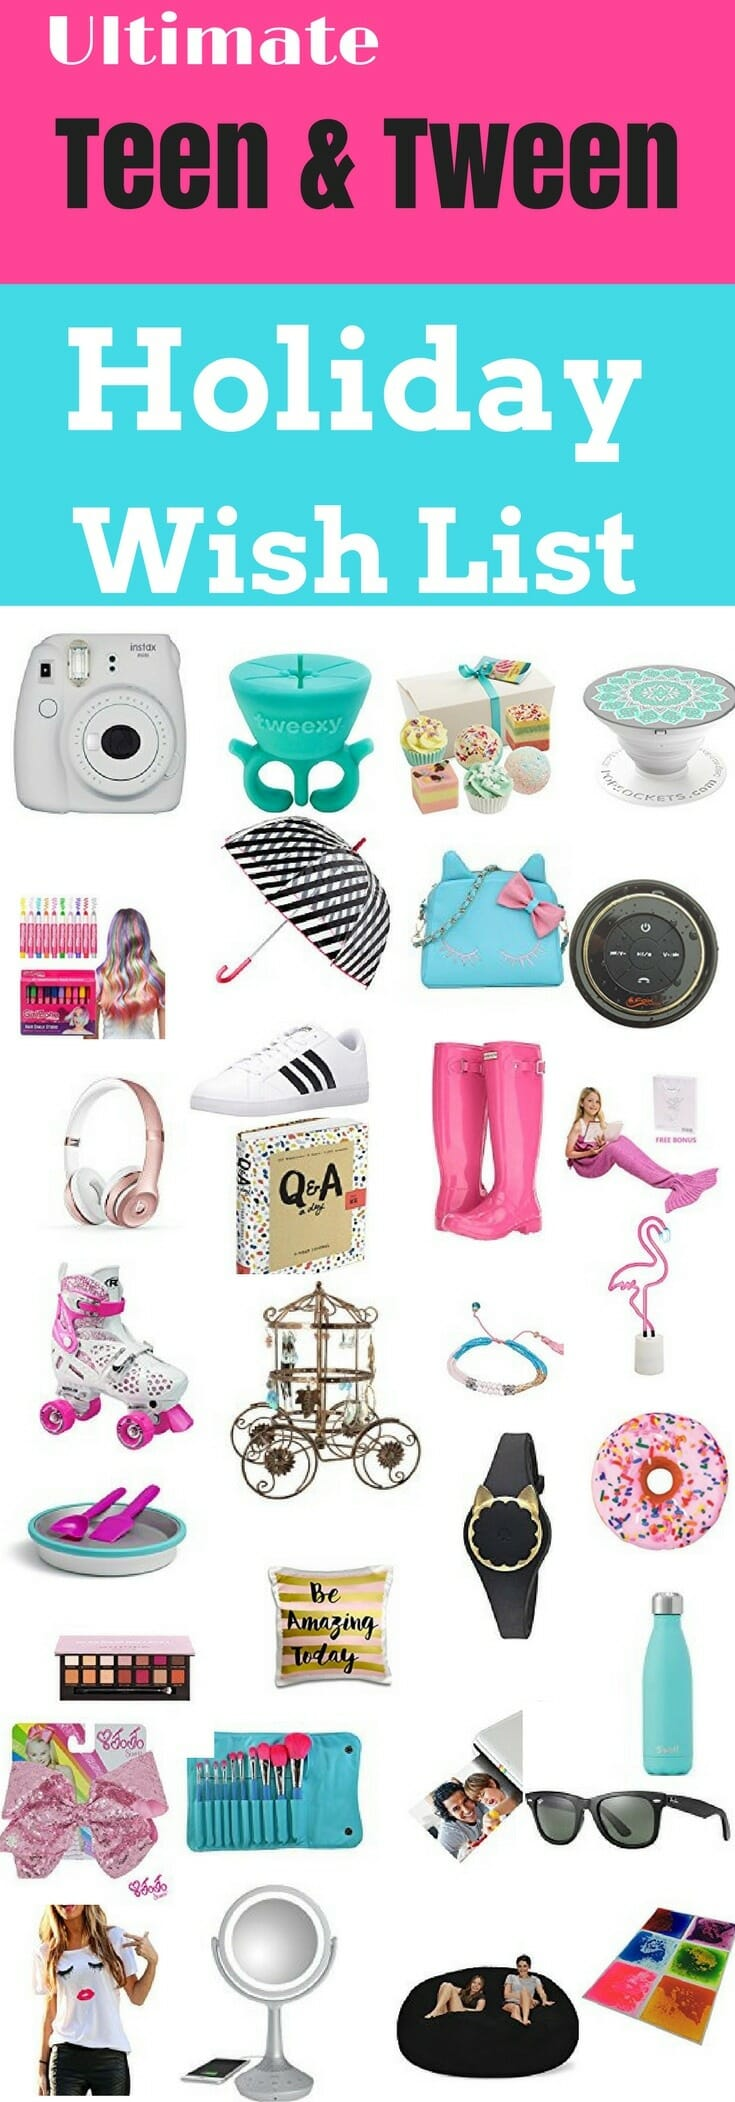 Ultimate Gift Guide For Tween & Teenage Girls